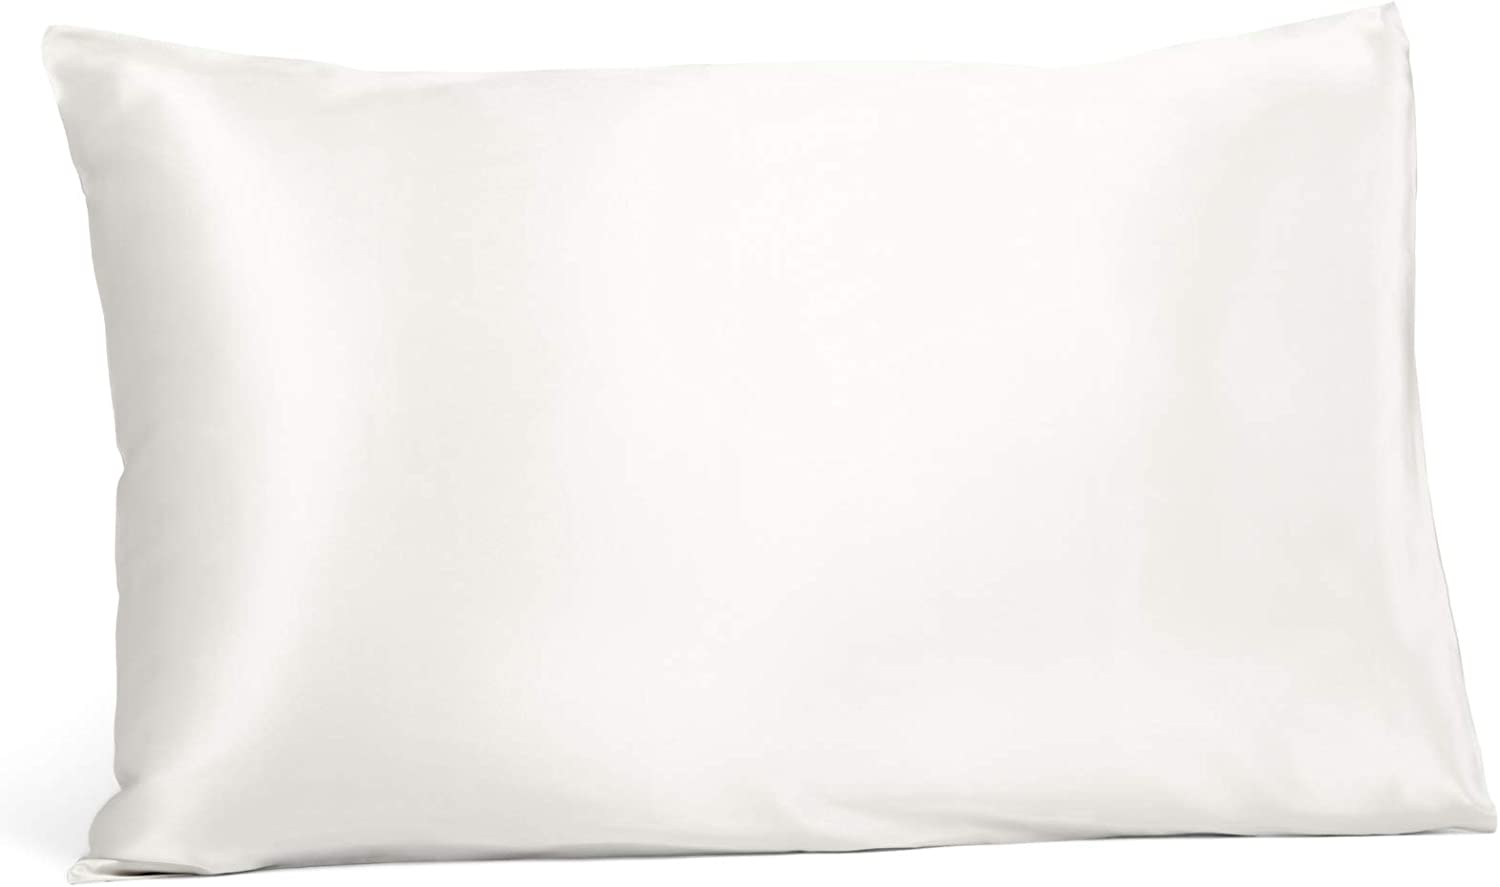 Fishers Phoenix Mall Finery 25mm 100% Pure Hou Pillowcase Silk Discount is also underway Good Mulberry